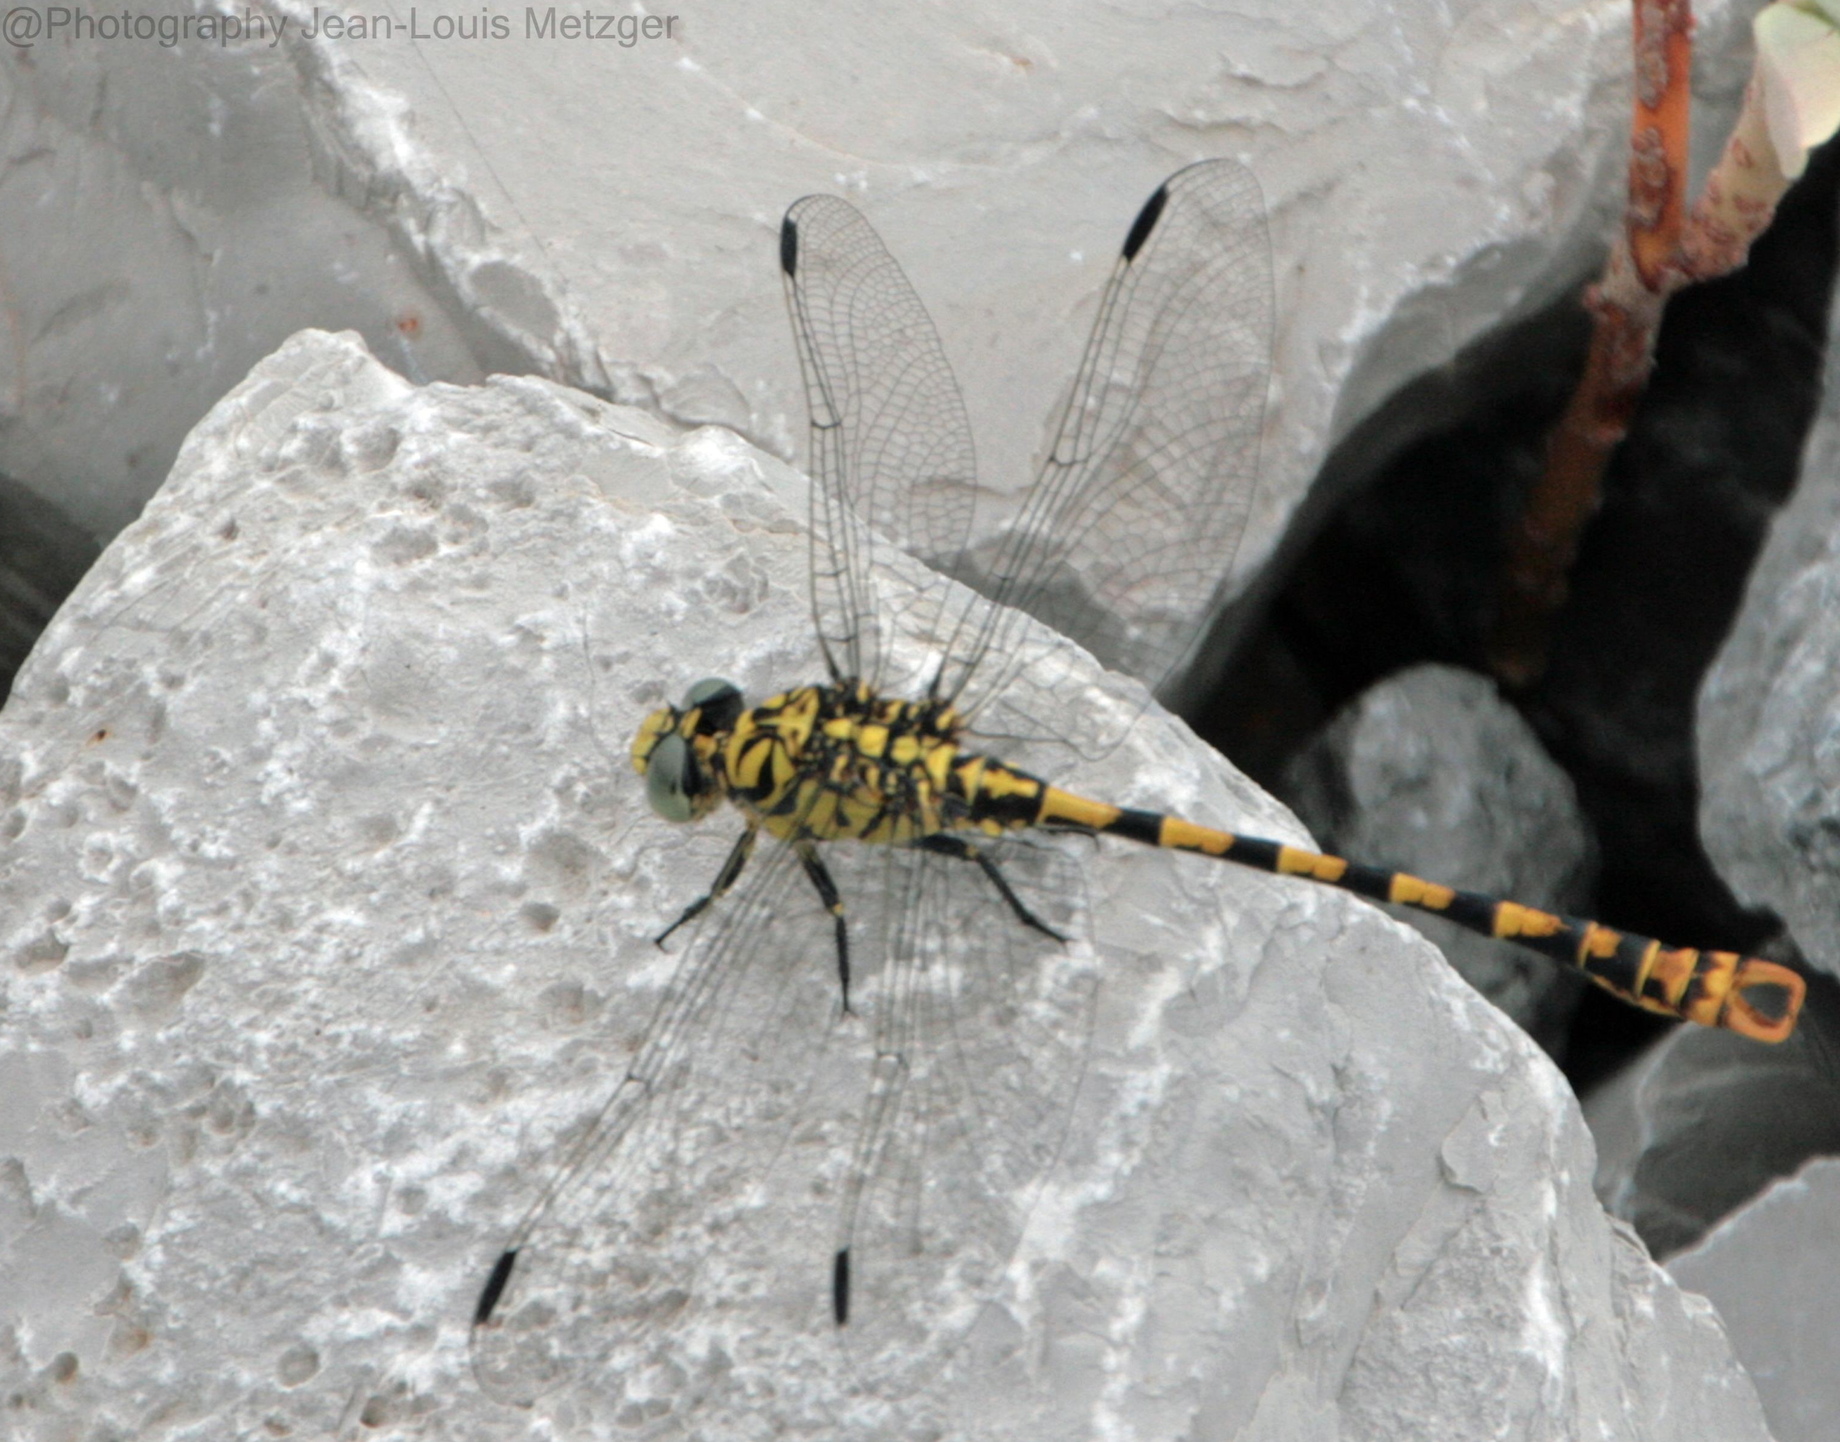 Small Pincertail (Onychogomphus forcipatus)